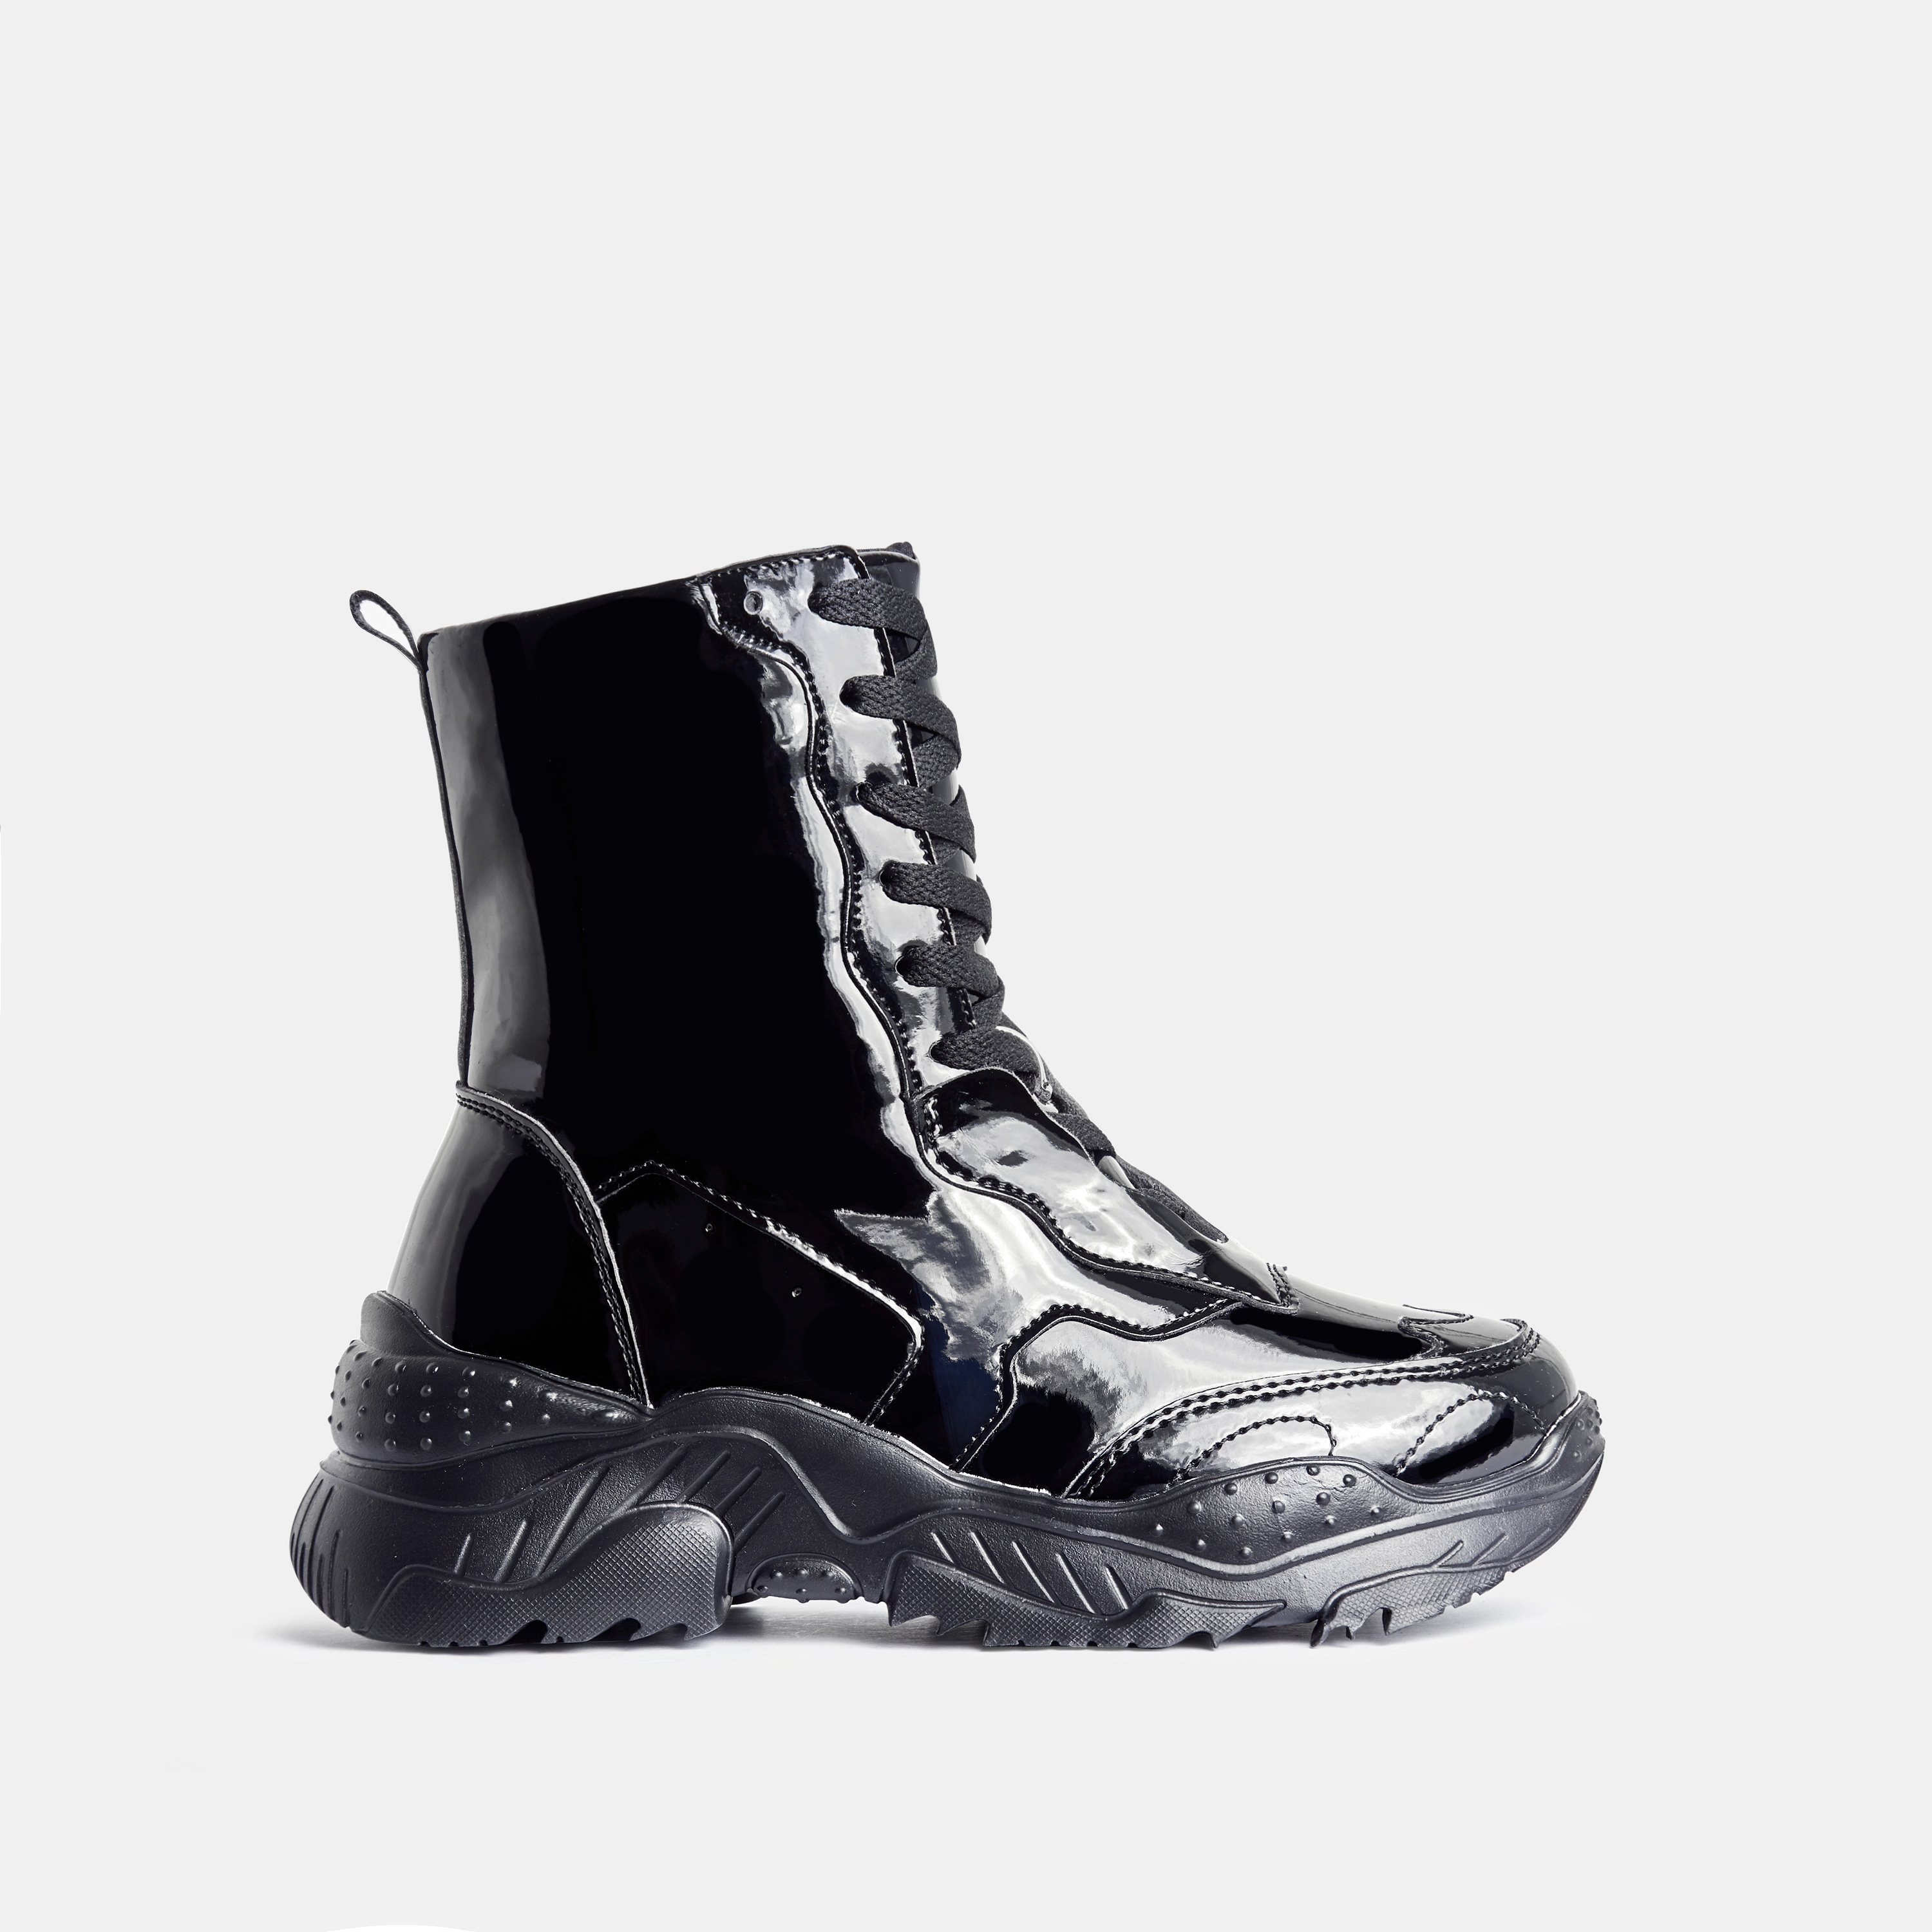 Kute Chunky Sole Lace Up Ankle Biker Boot In Black Patent